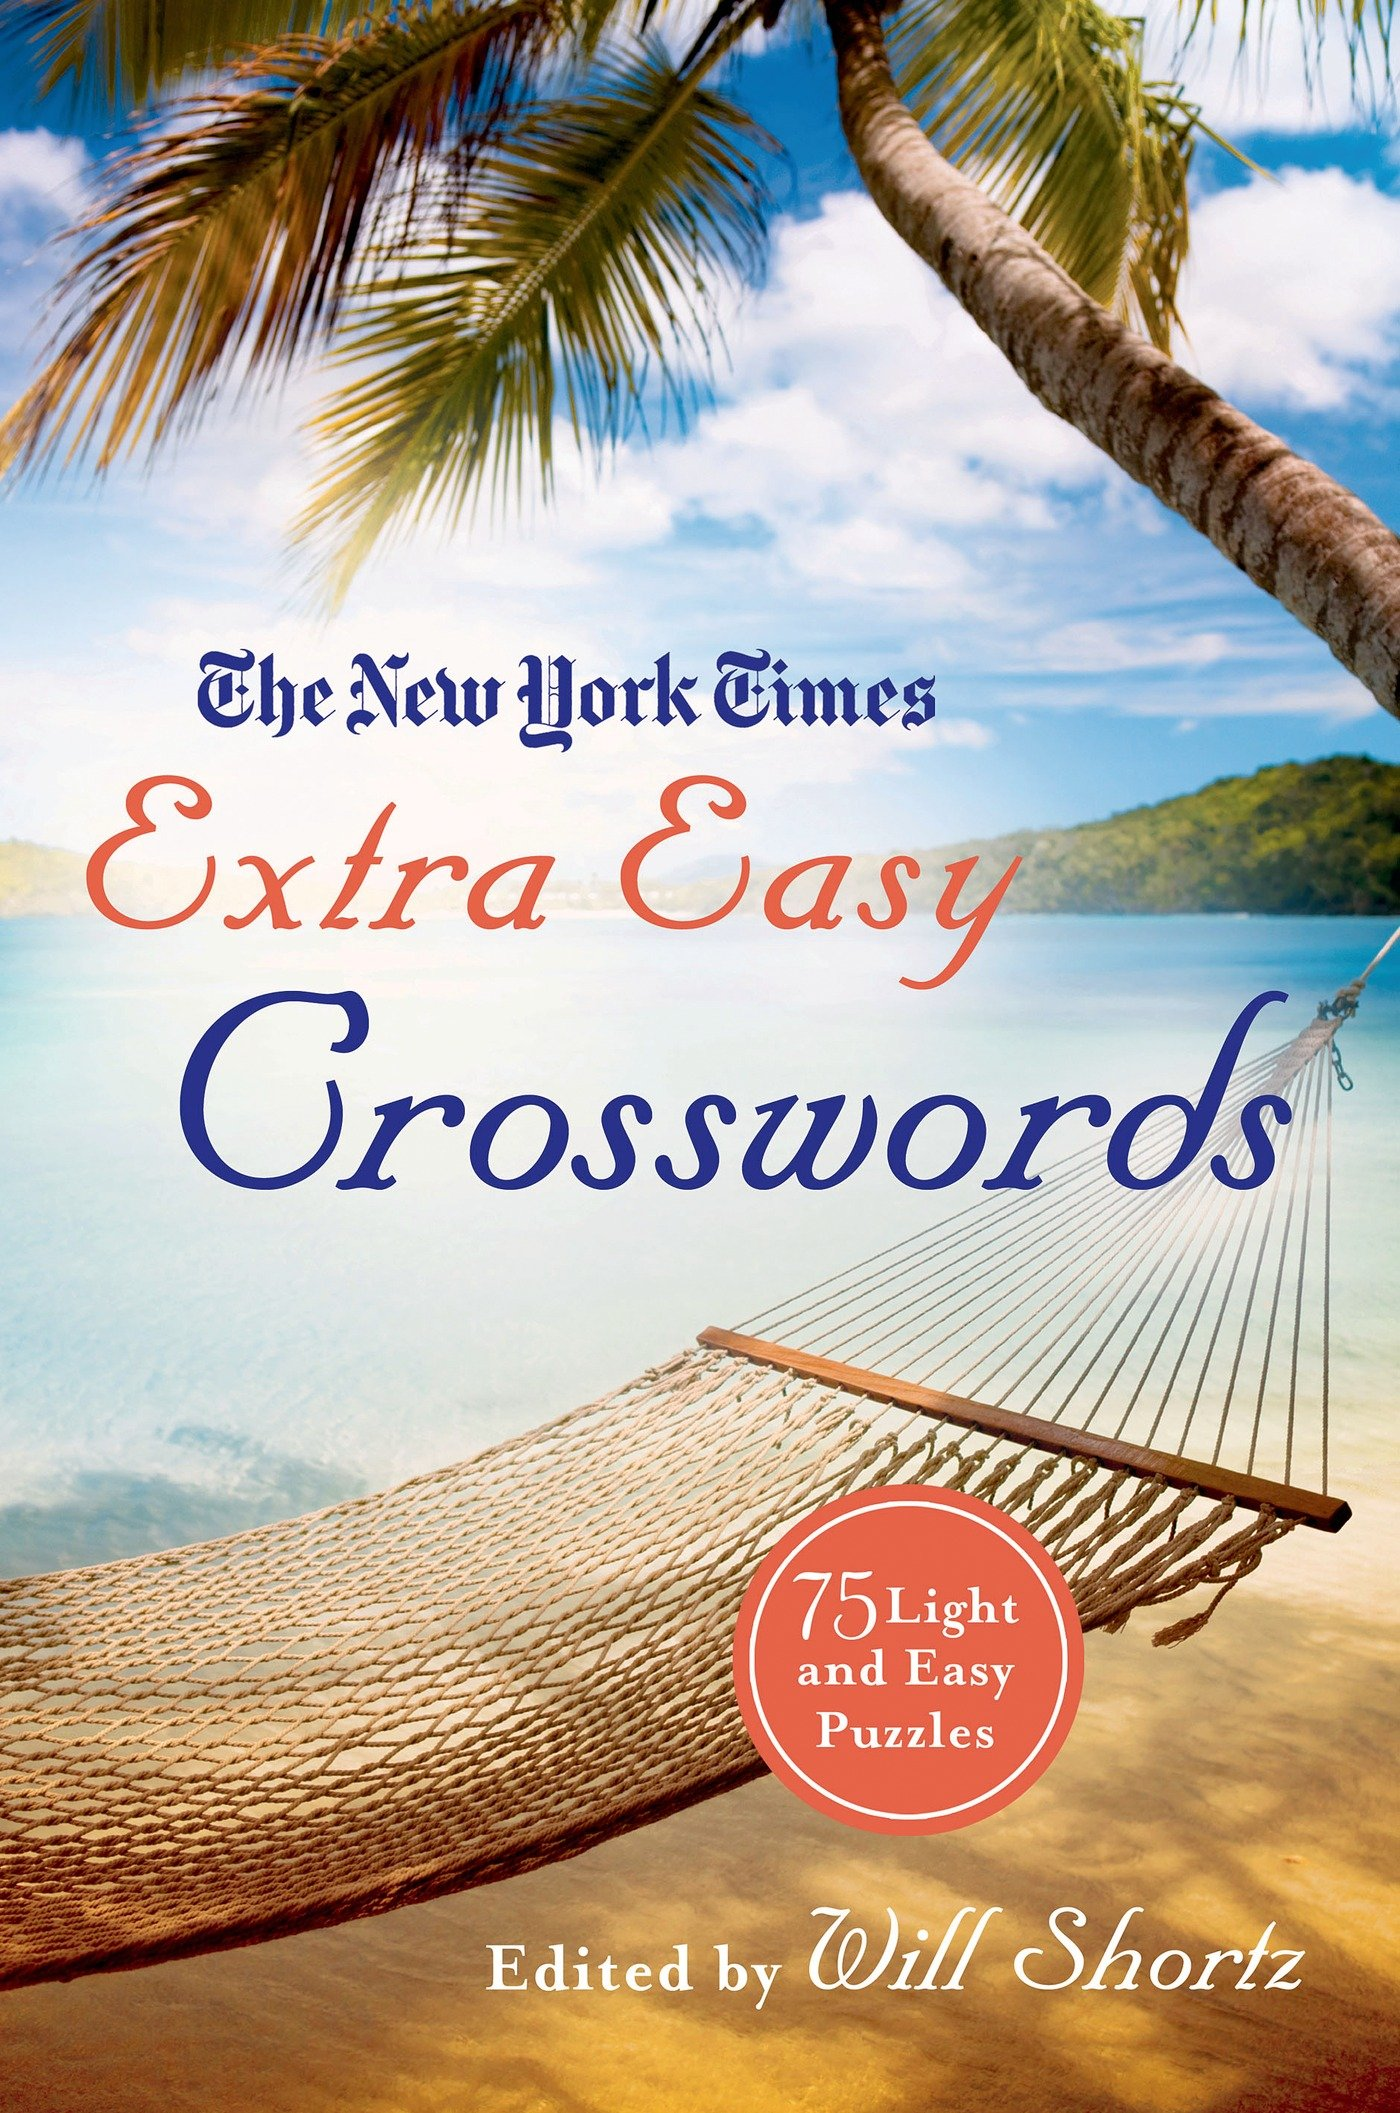 Read Online The New York Times Extra Easy Crosswords: 75 Light and  Easy Puzzles pdf